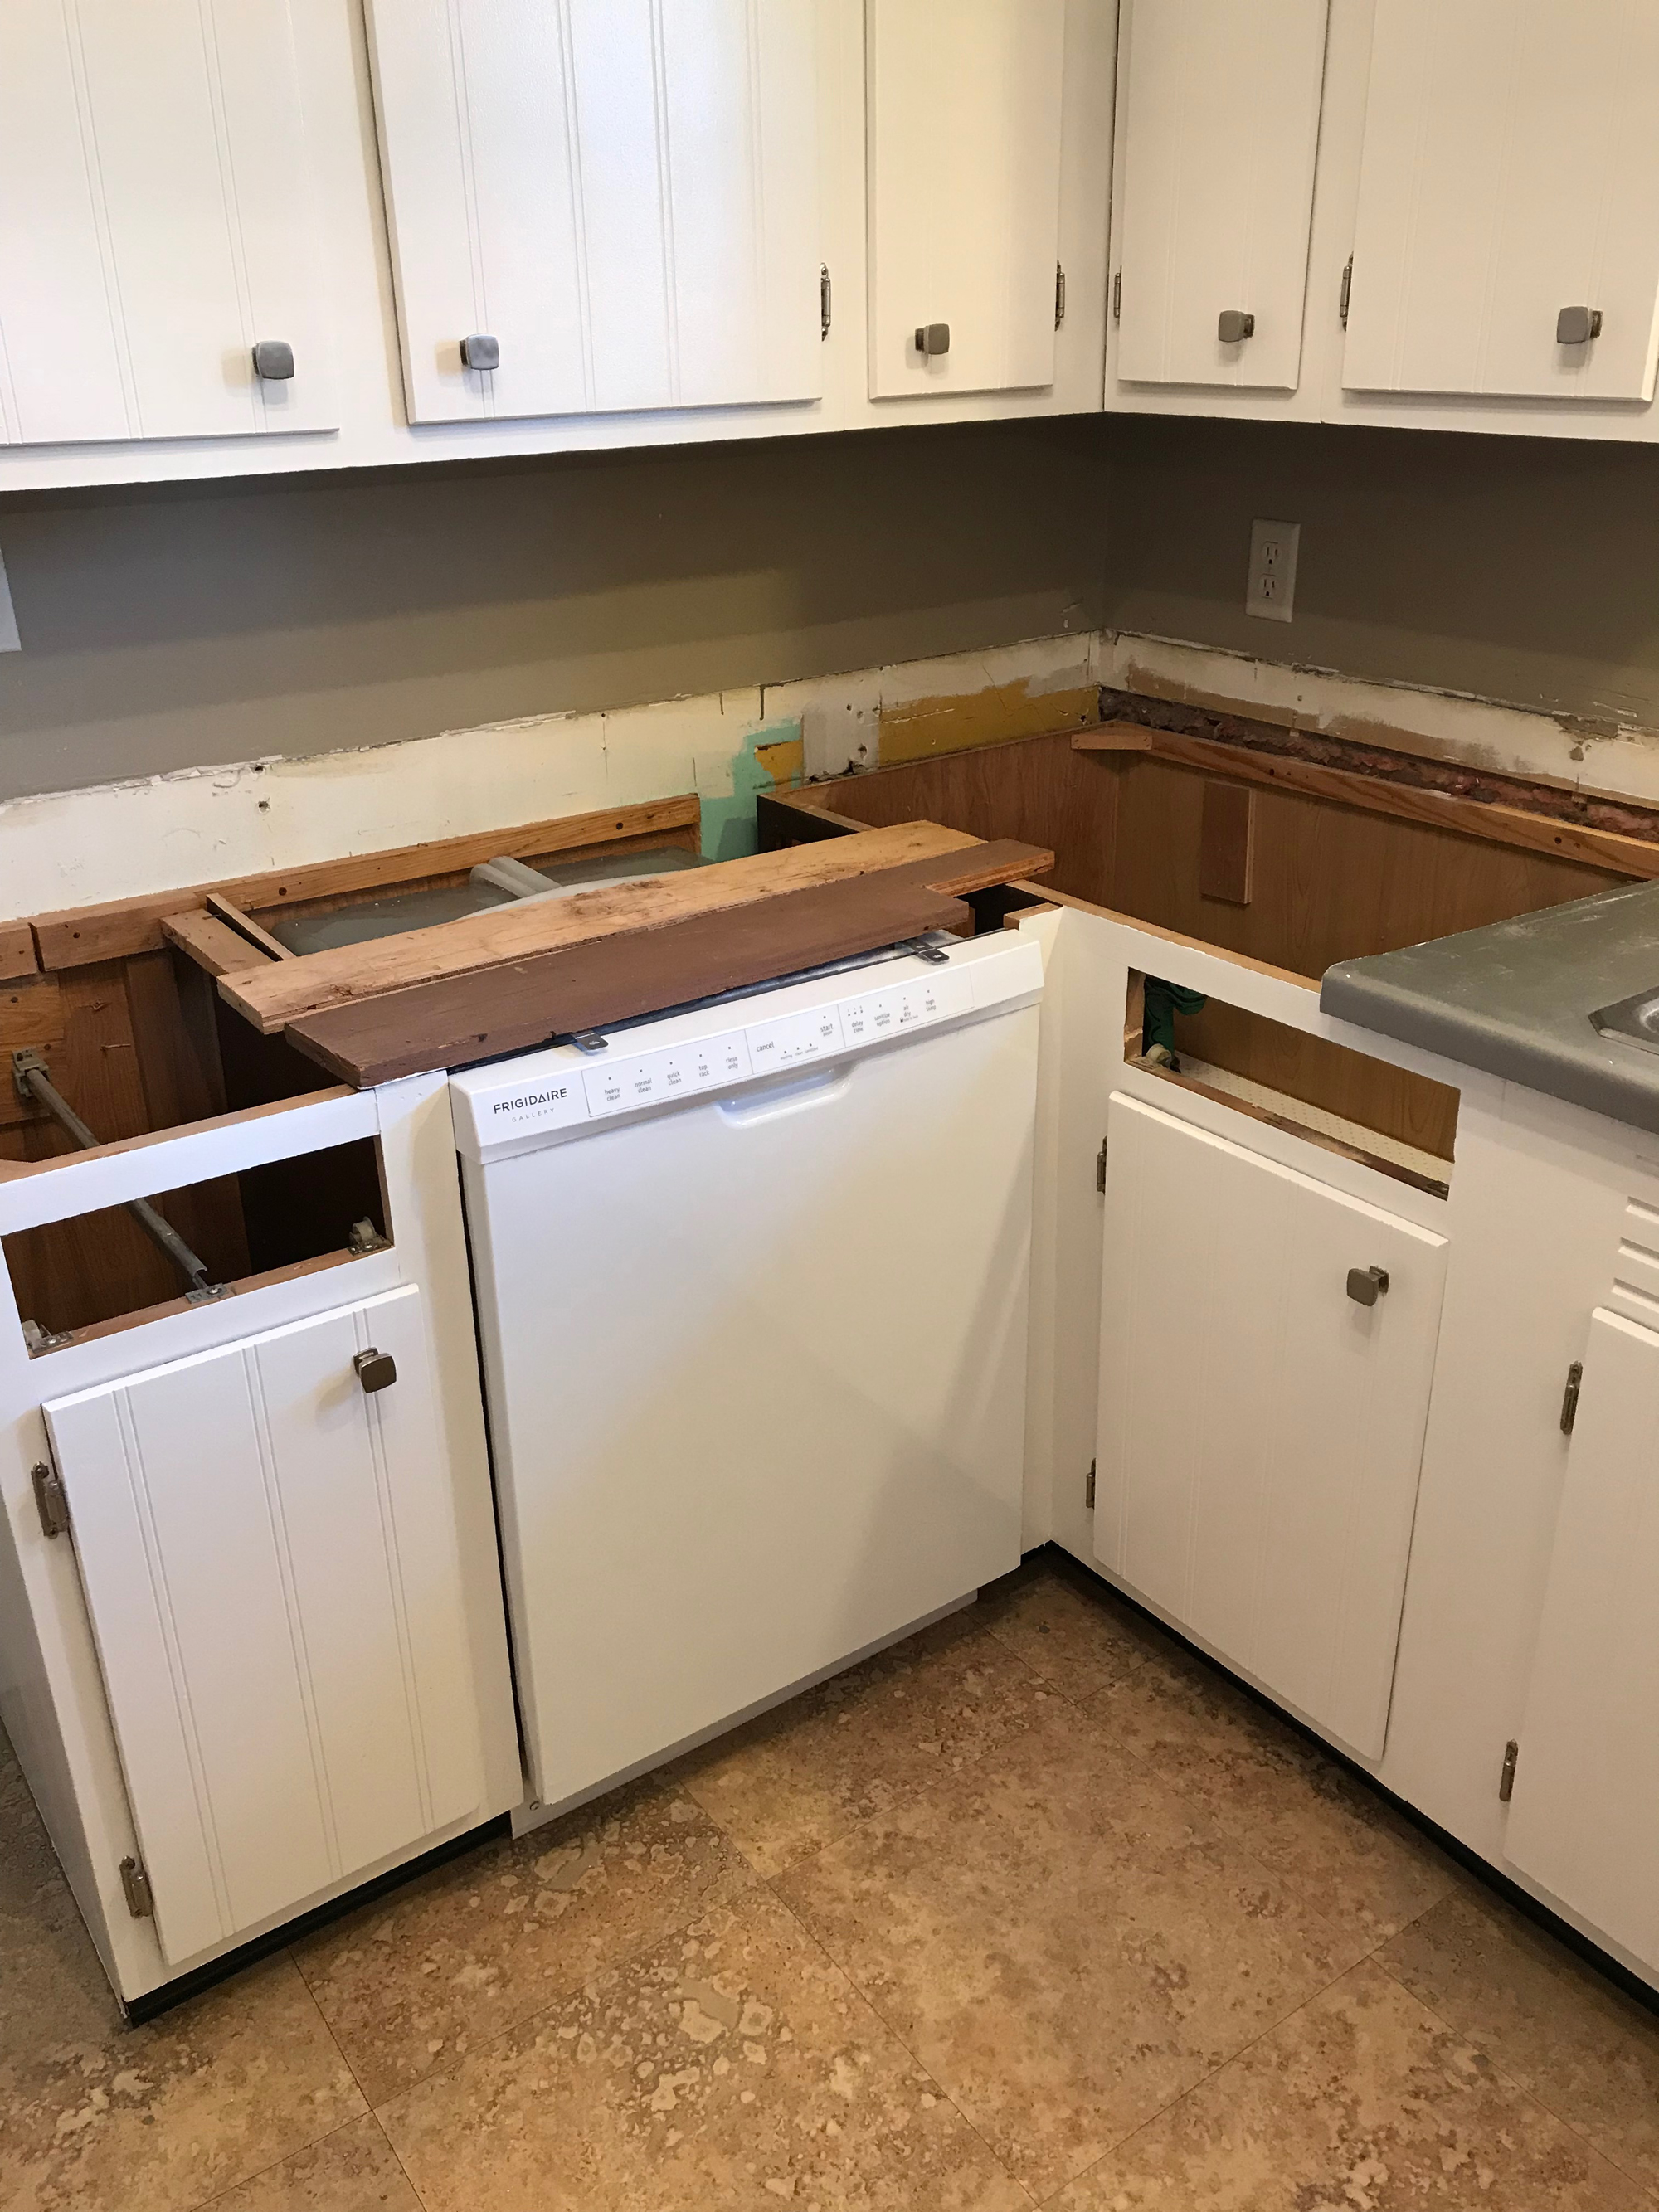 Removing The Old Countertop Was An Exercise In Contortion And A Test Of My Brute Strength Top Attached To Base Cabinets With Long S